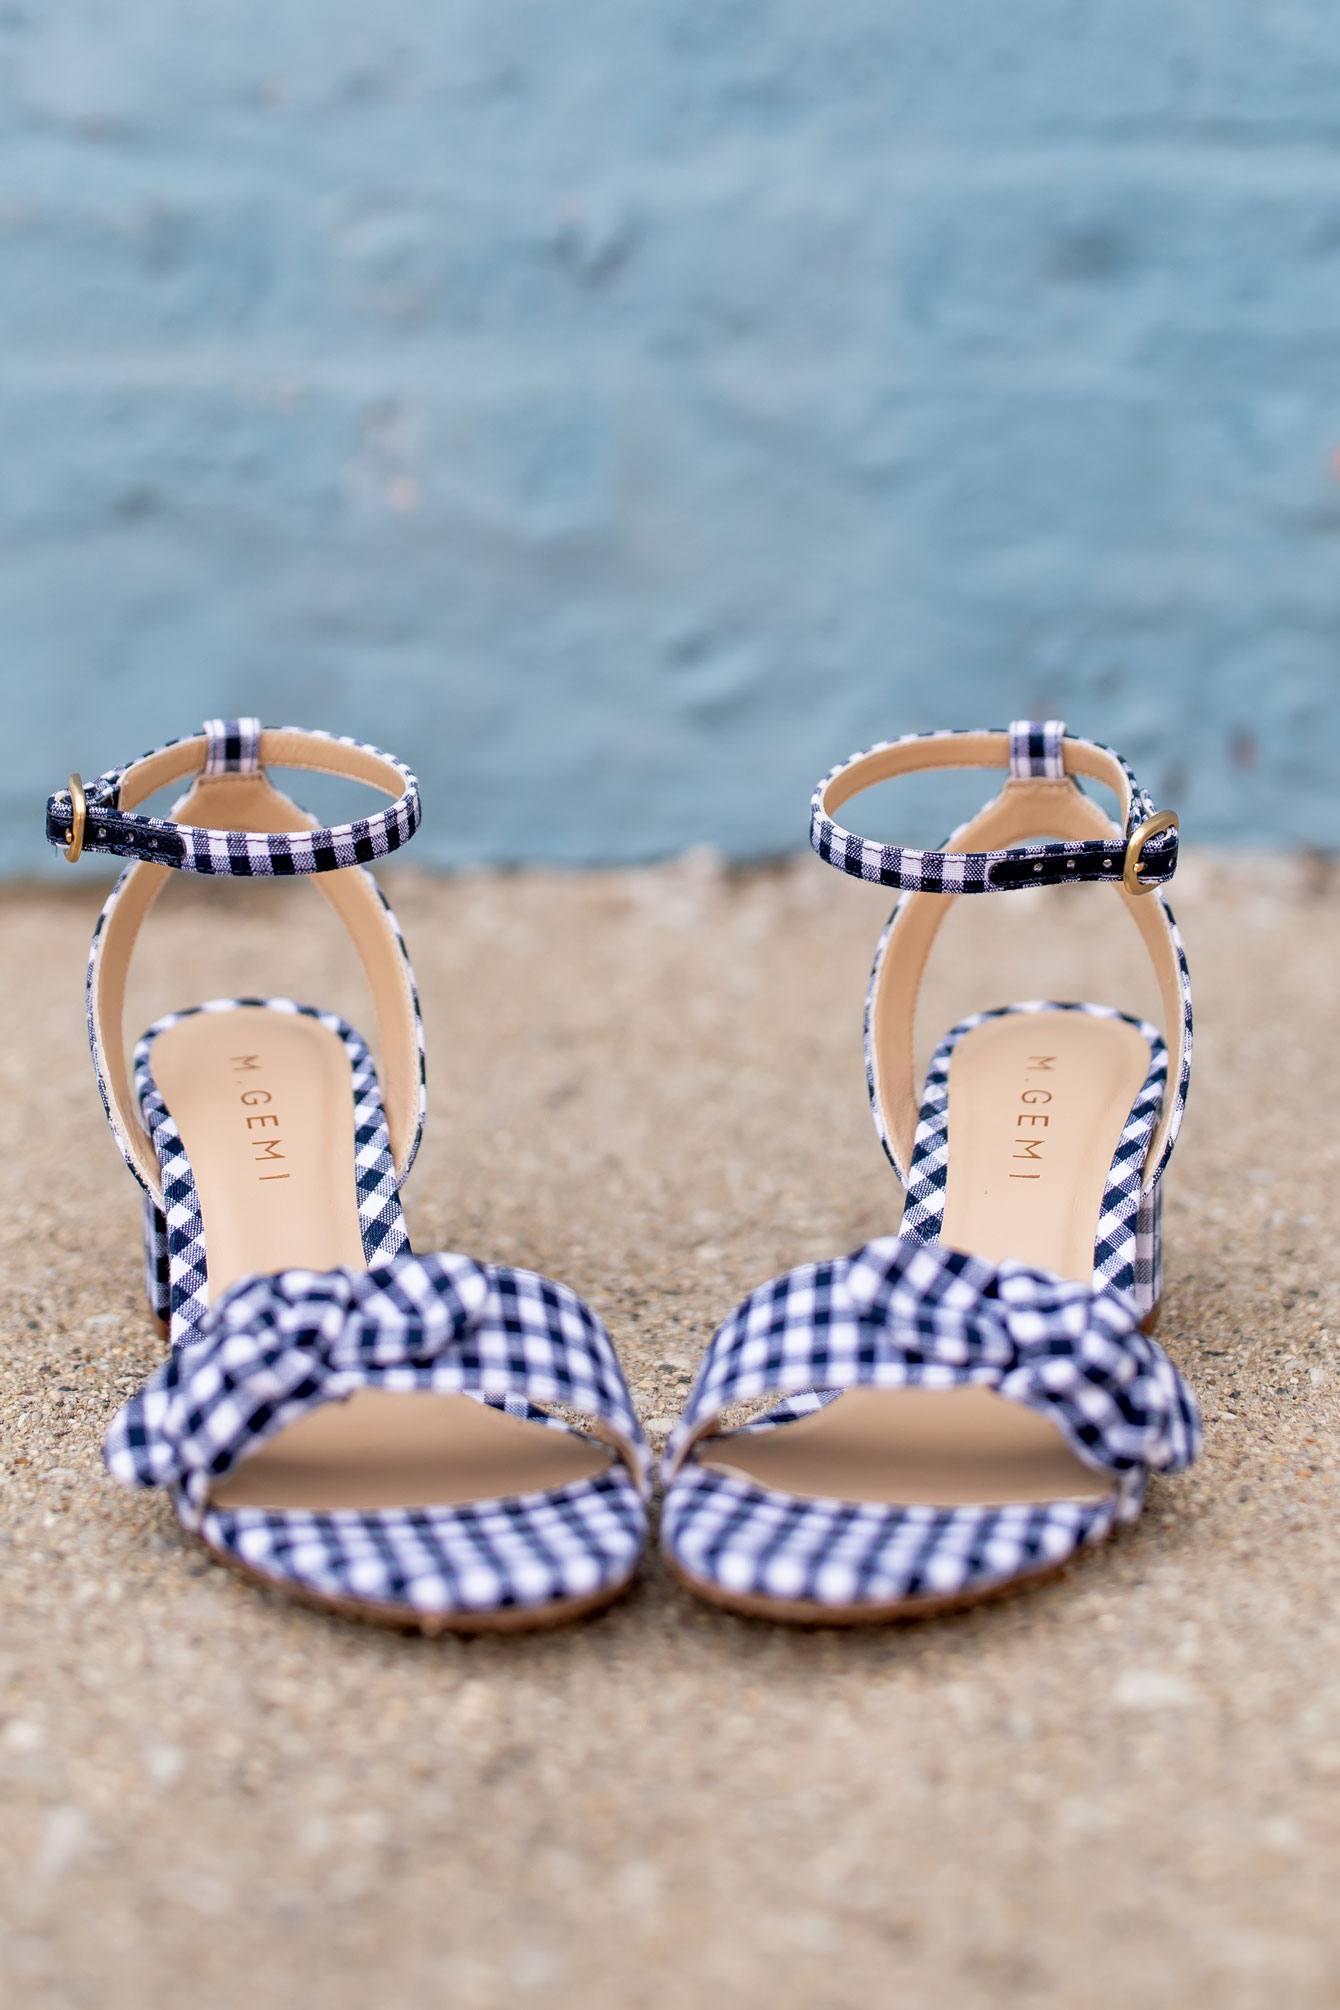 M Gemi x Draper James Gingham Sandals